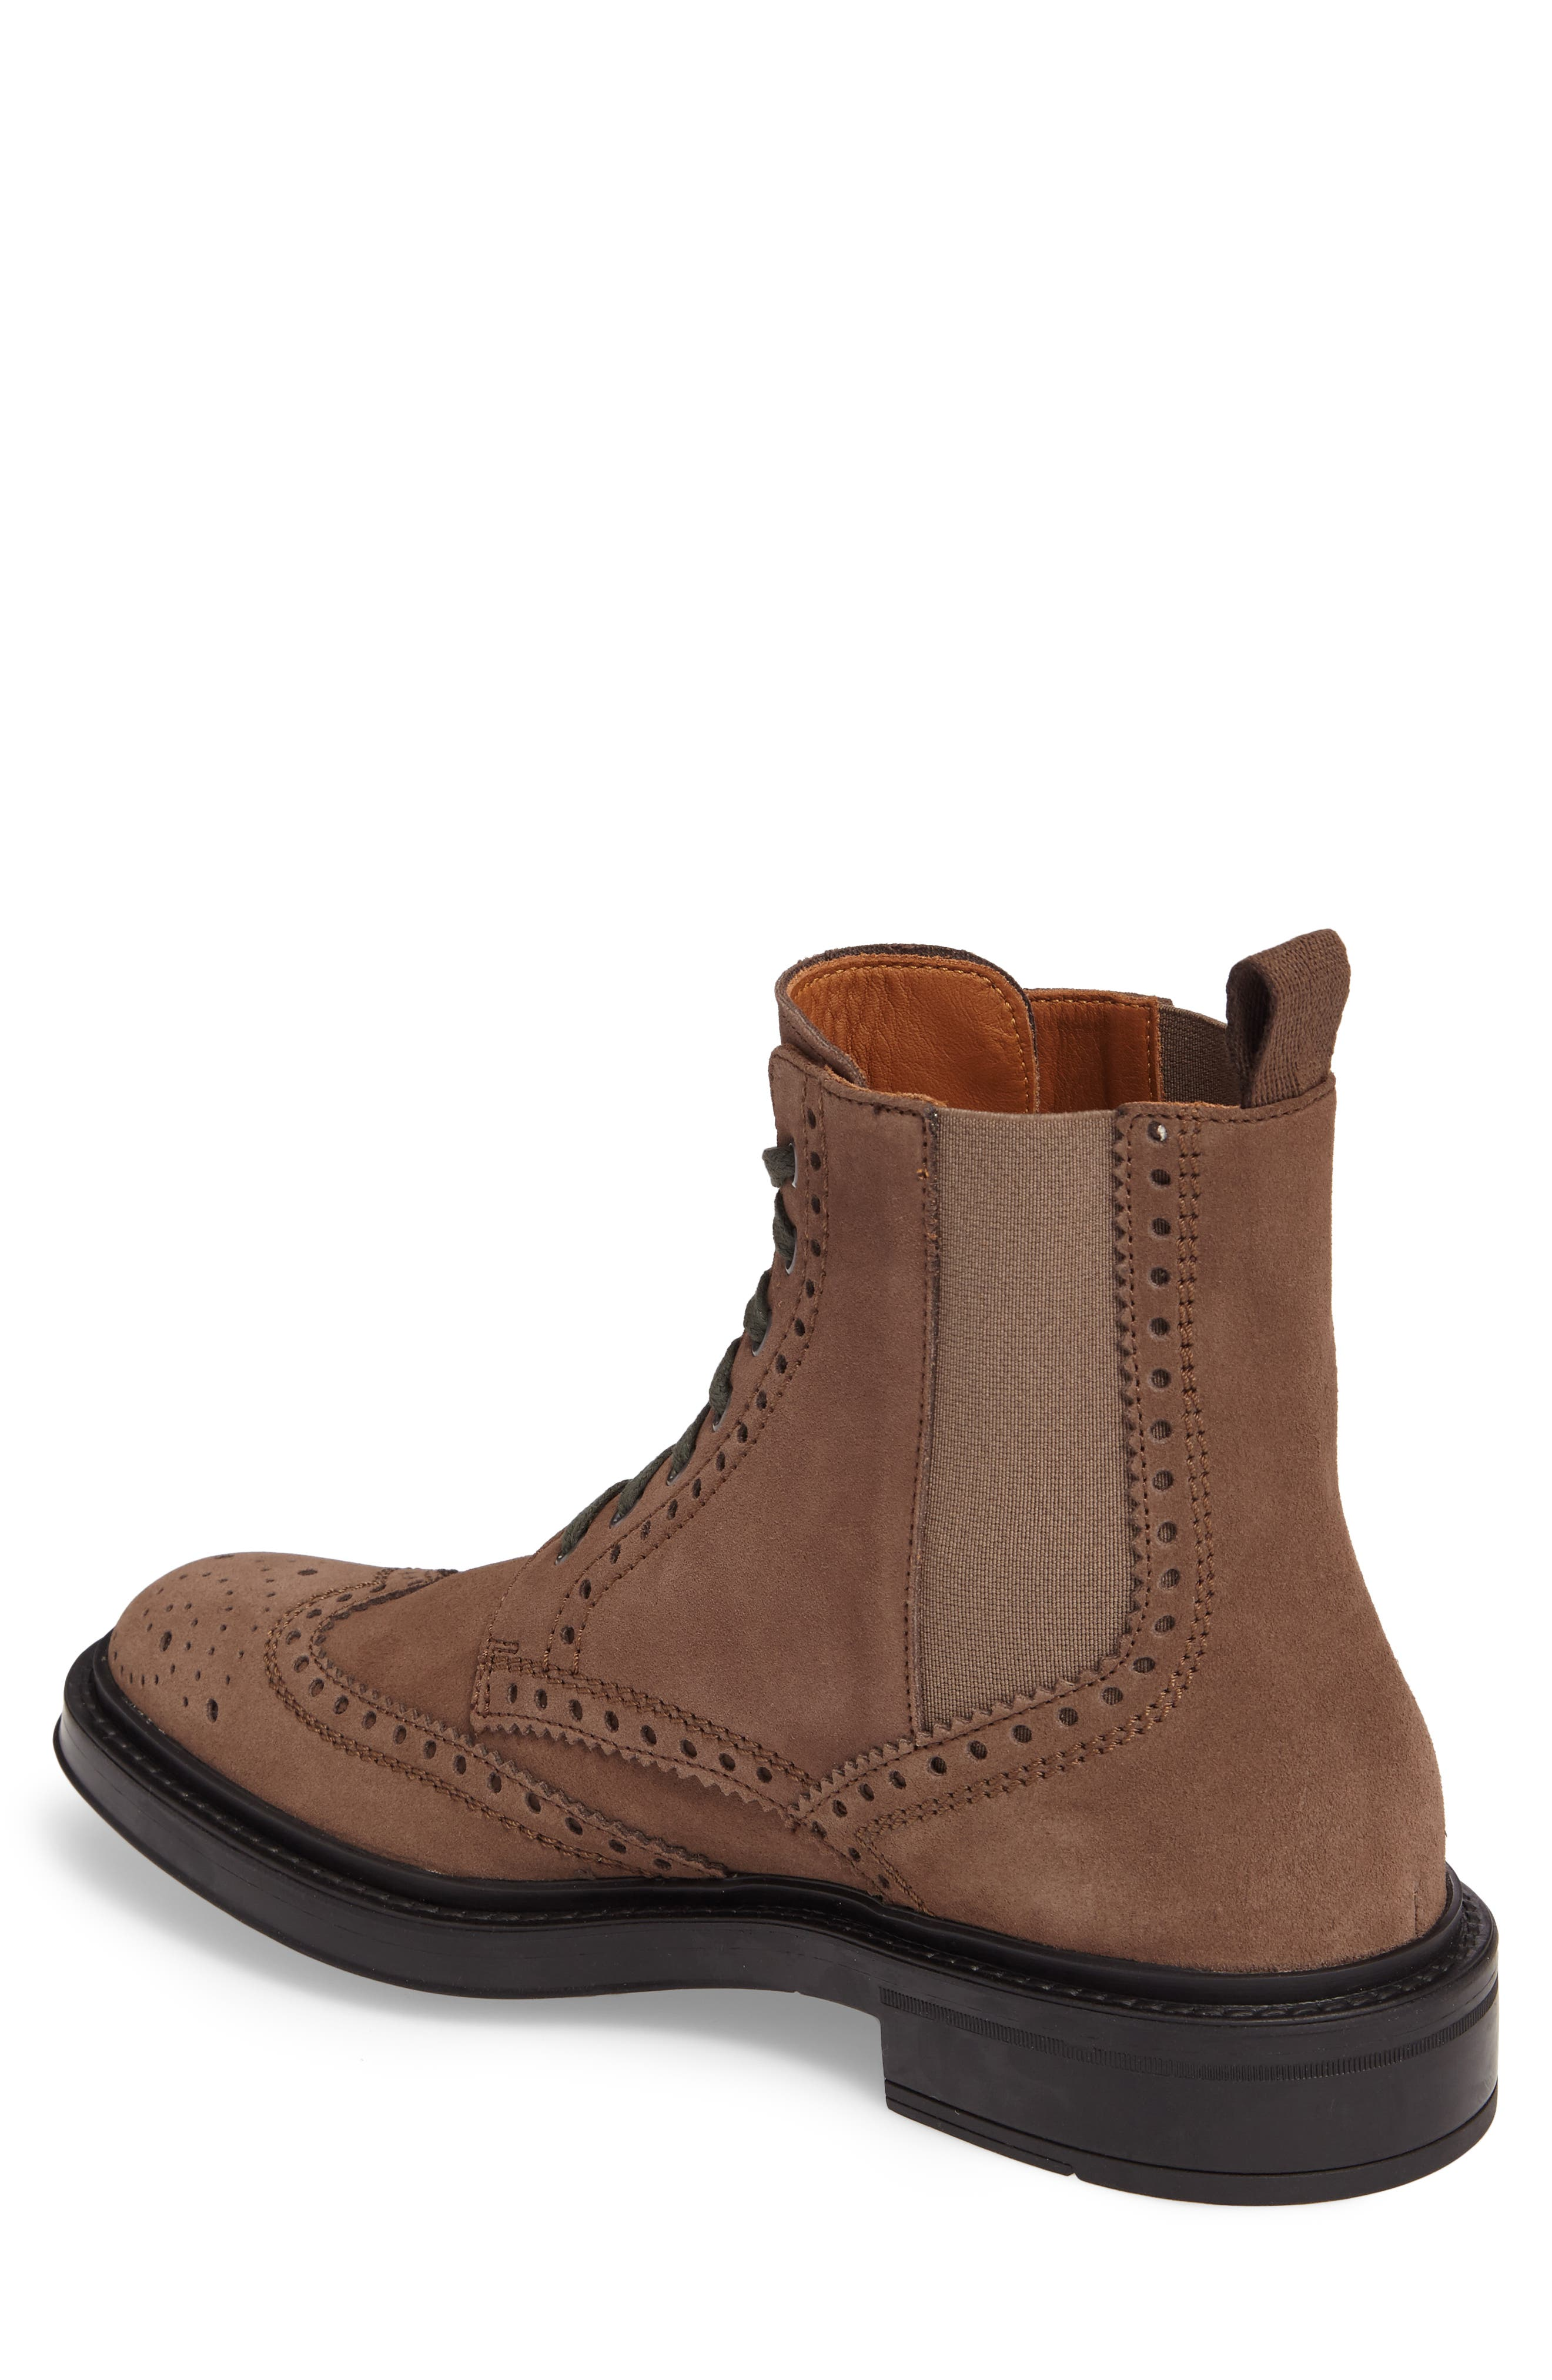 Lawrence Wingtip Boot,                             Alternate thumbnail 2, color,                             Dark Taupe